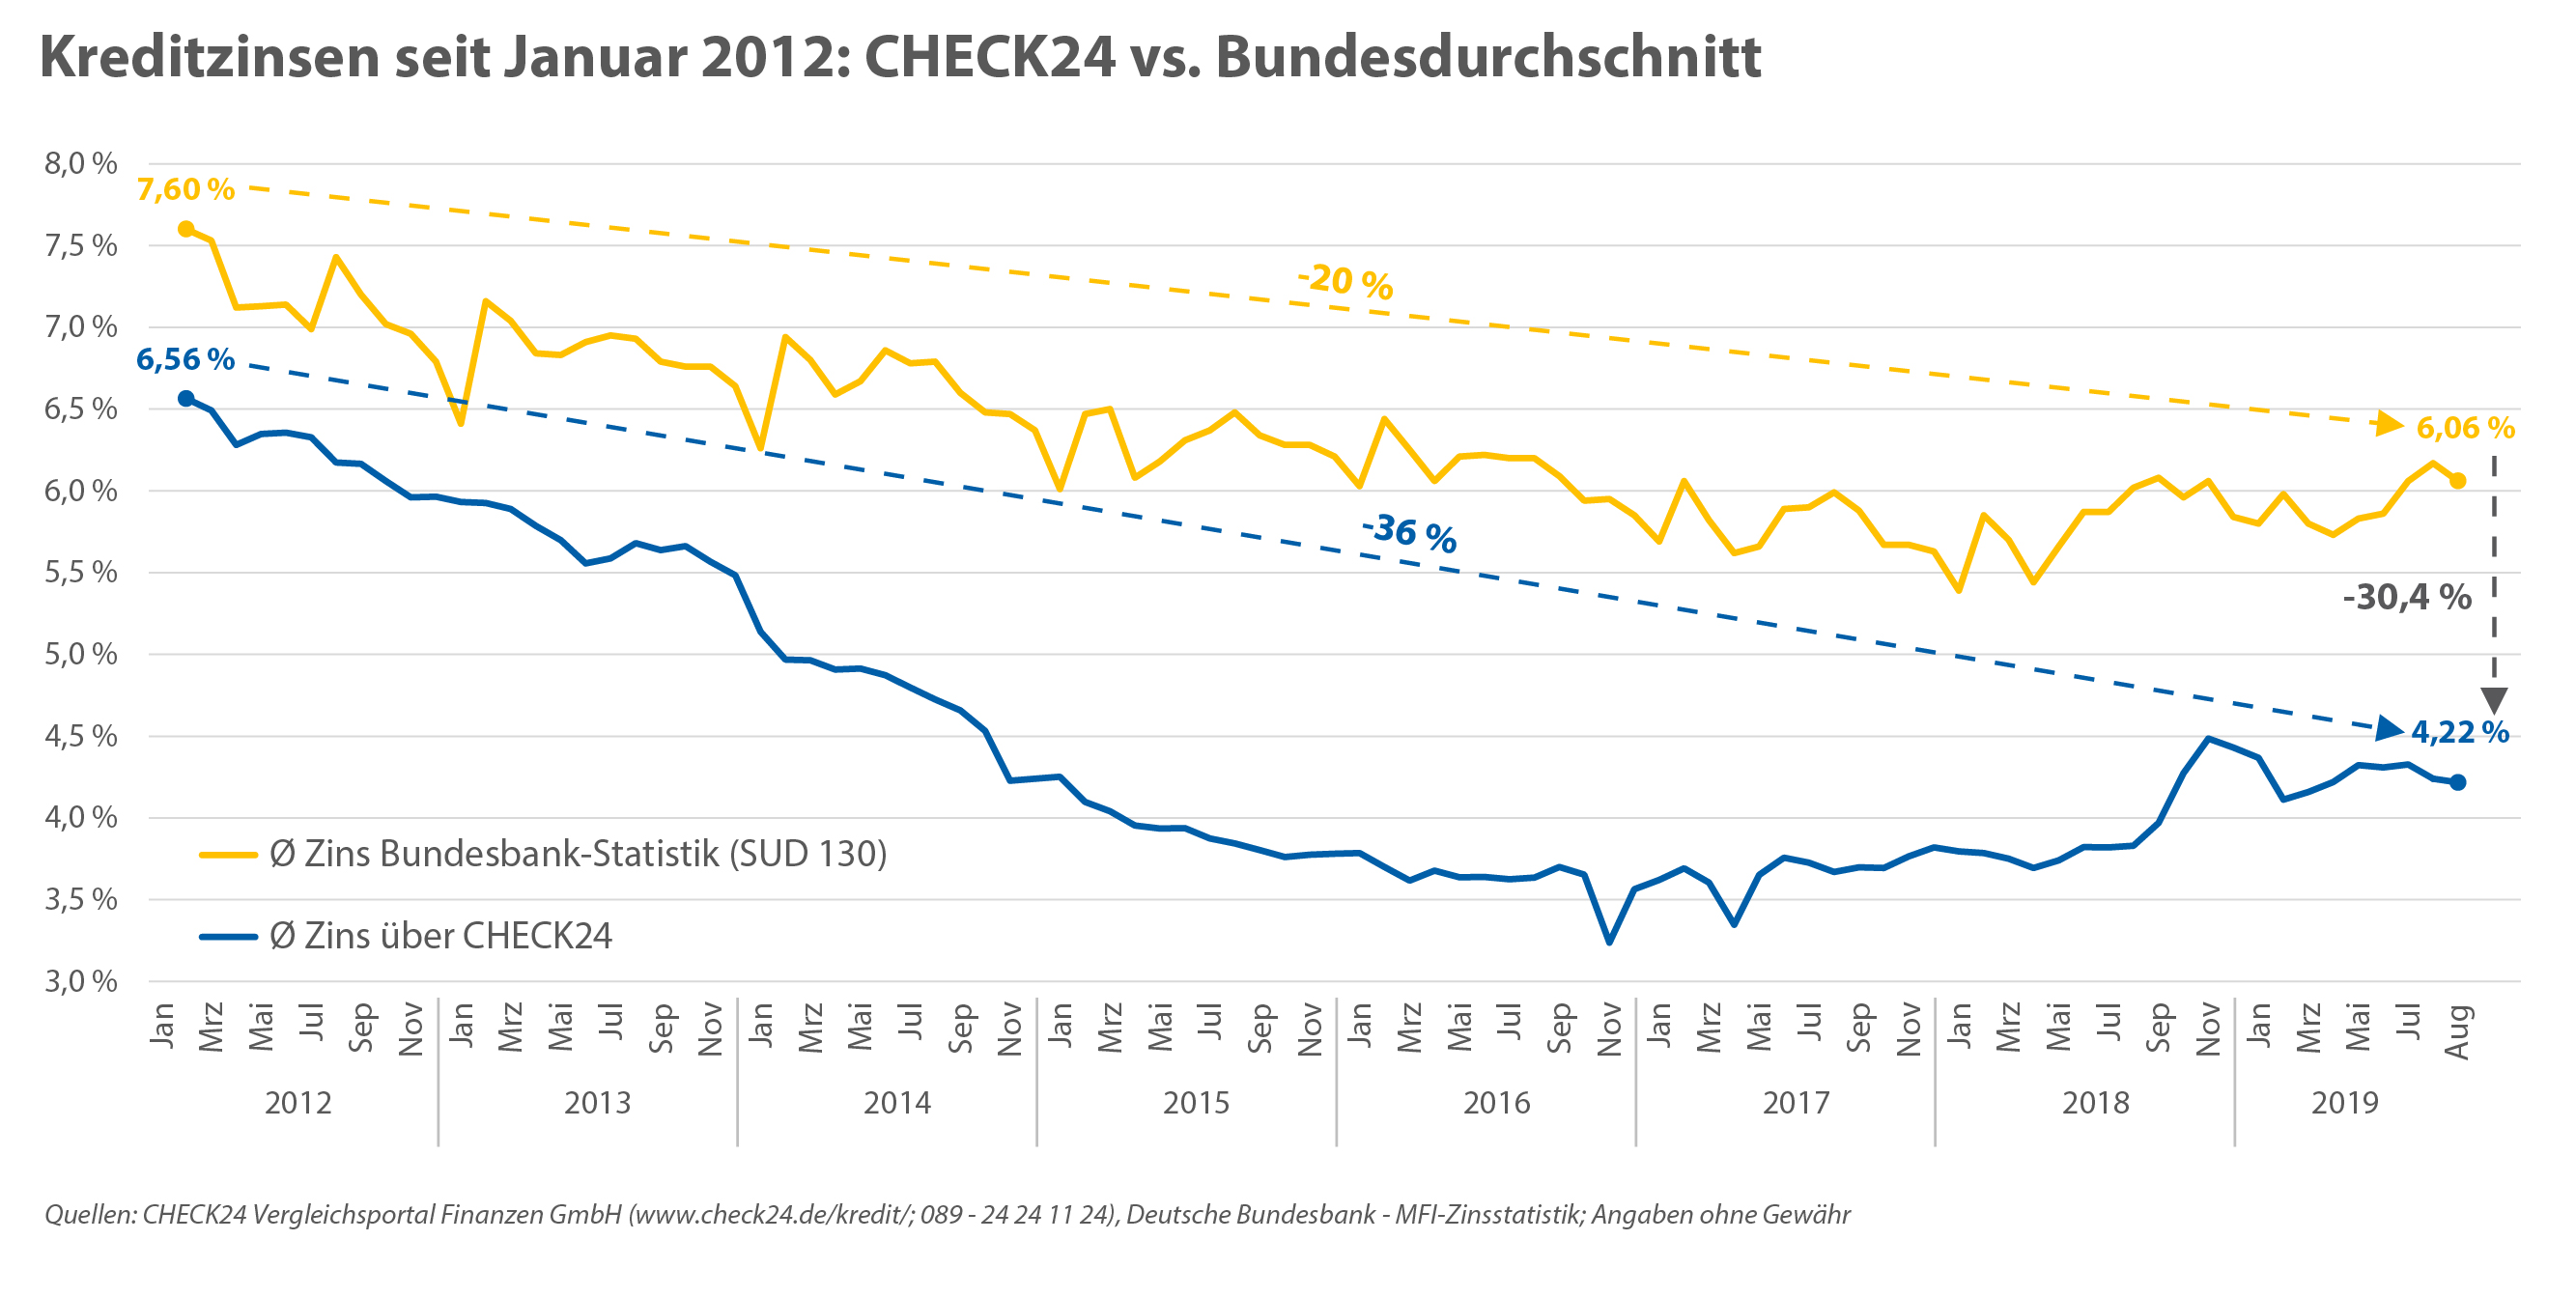 CHECK24 Zins vs Bundesbank Zins